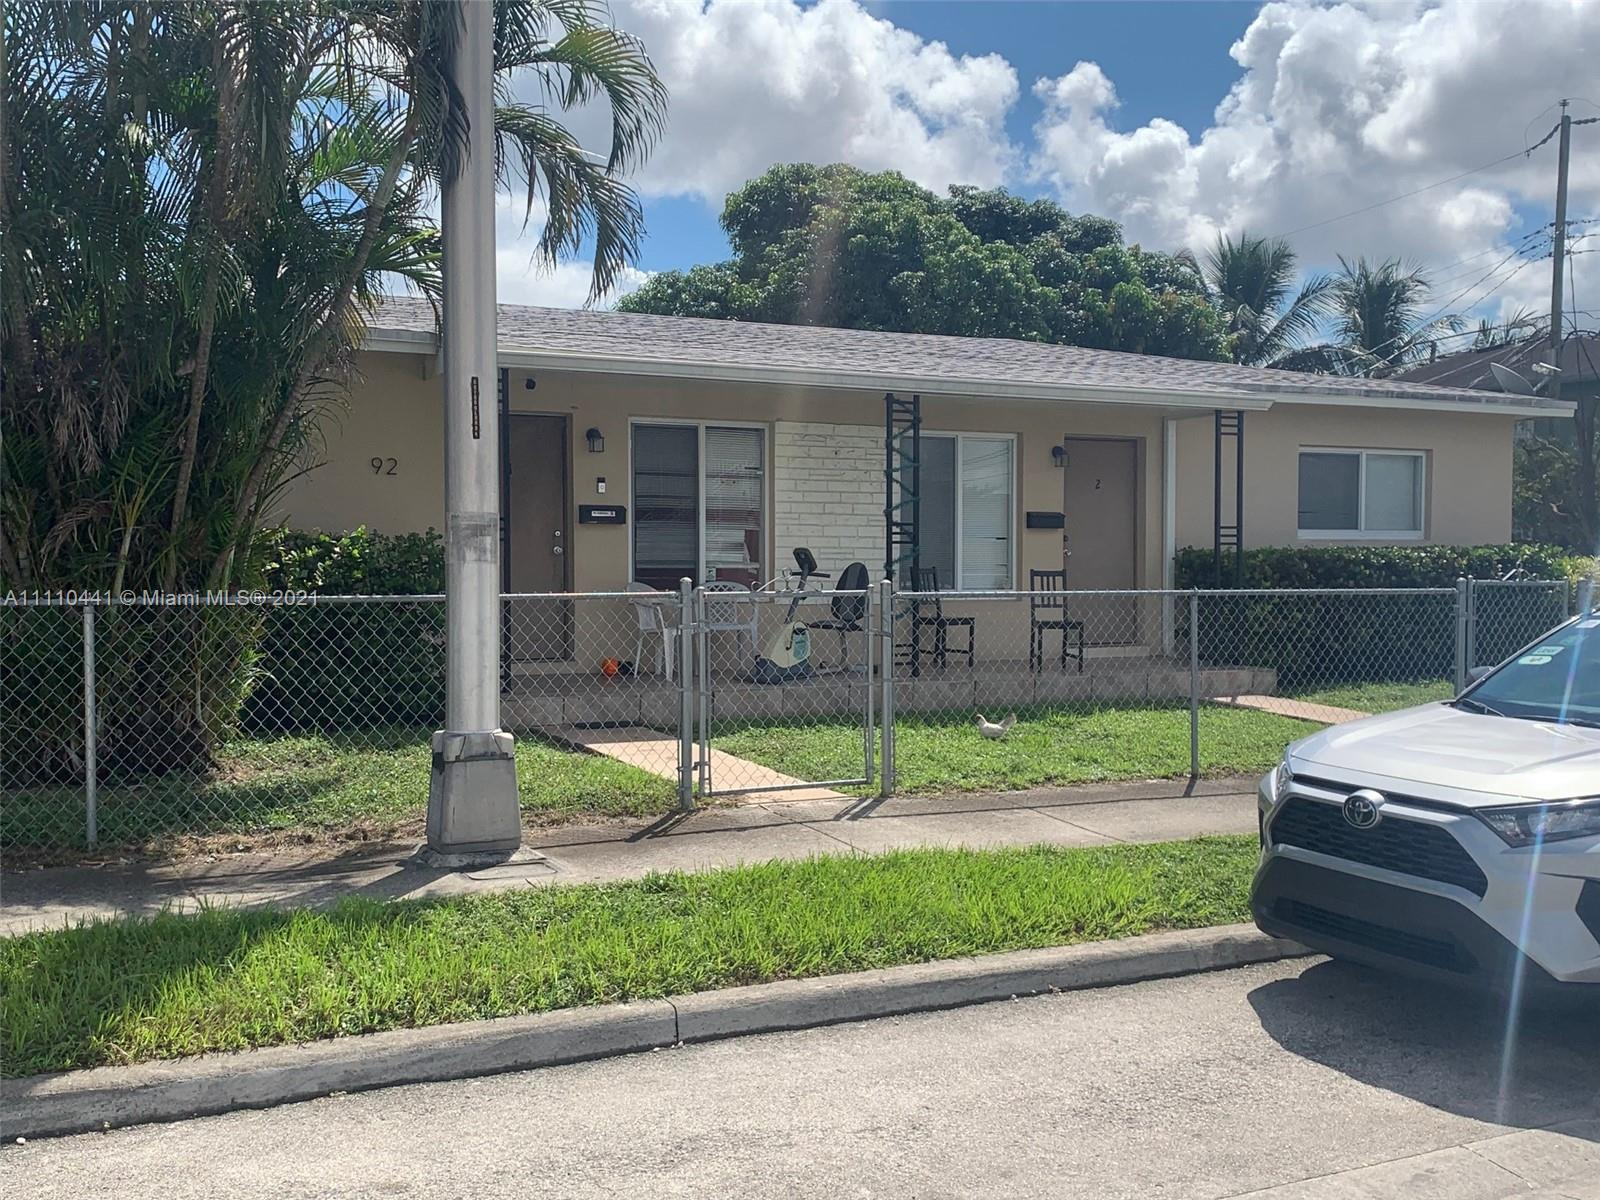 92 W 26th St, Hialeah, Florida 33010, ,Residential Income,For Sale,26th St,A11110441